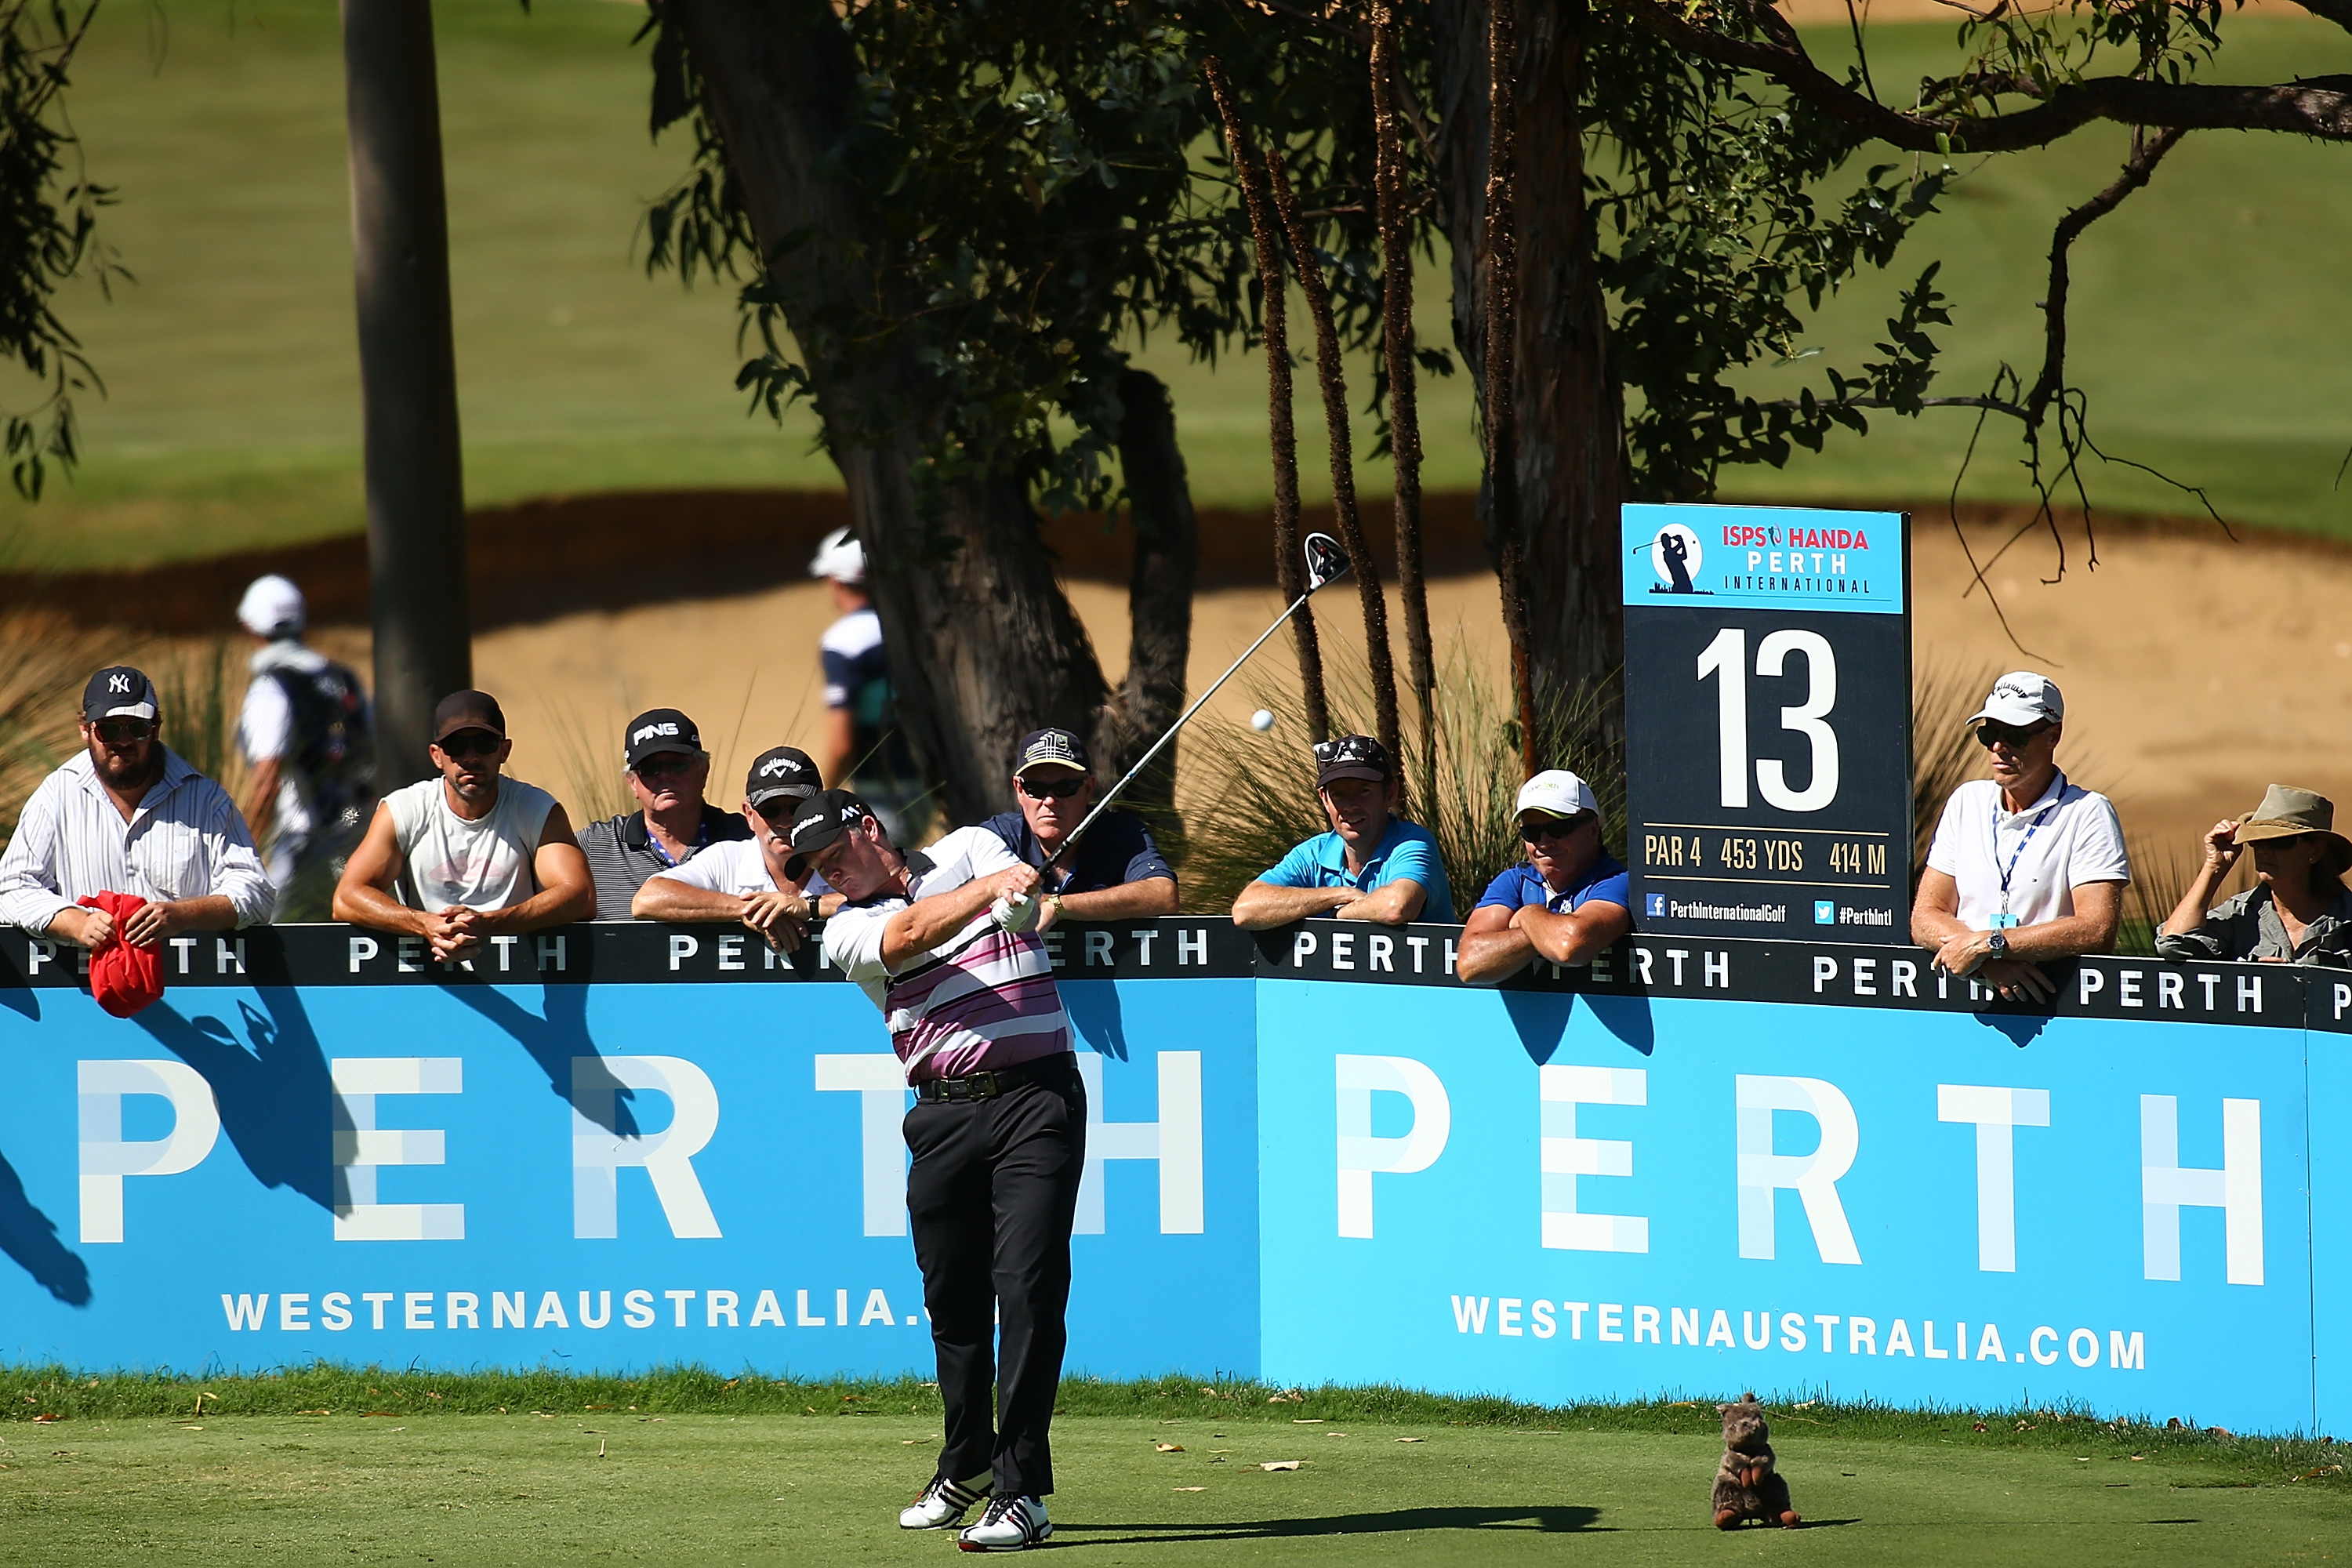 Lake Karrinyup near Perth will host the latest experiment with new, fan-friendly pro golf tournament formats.